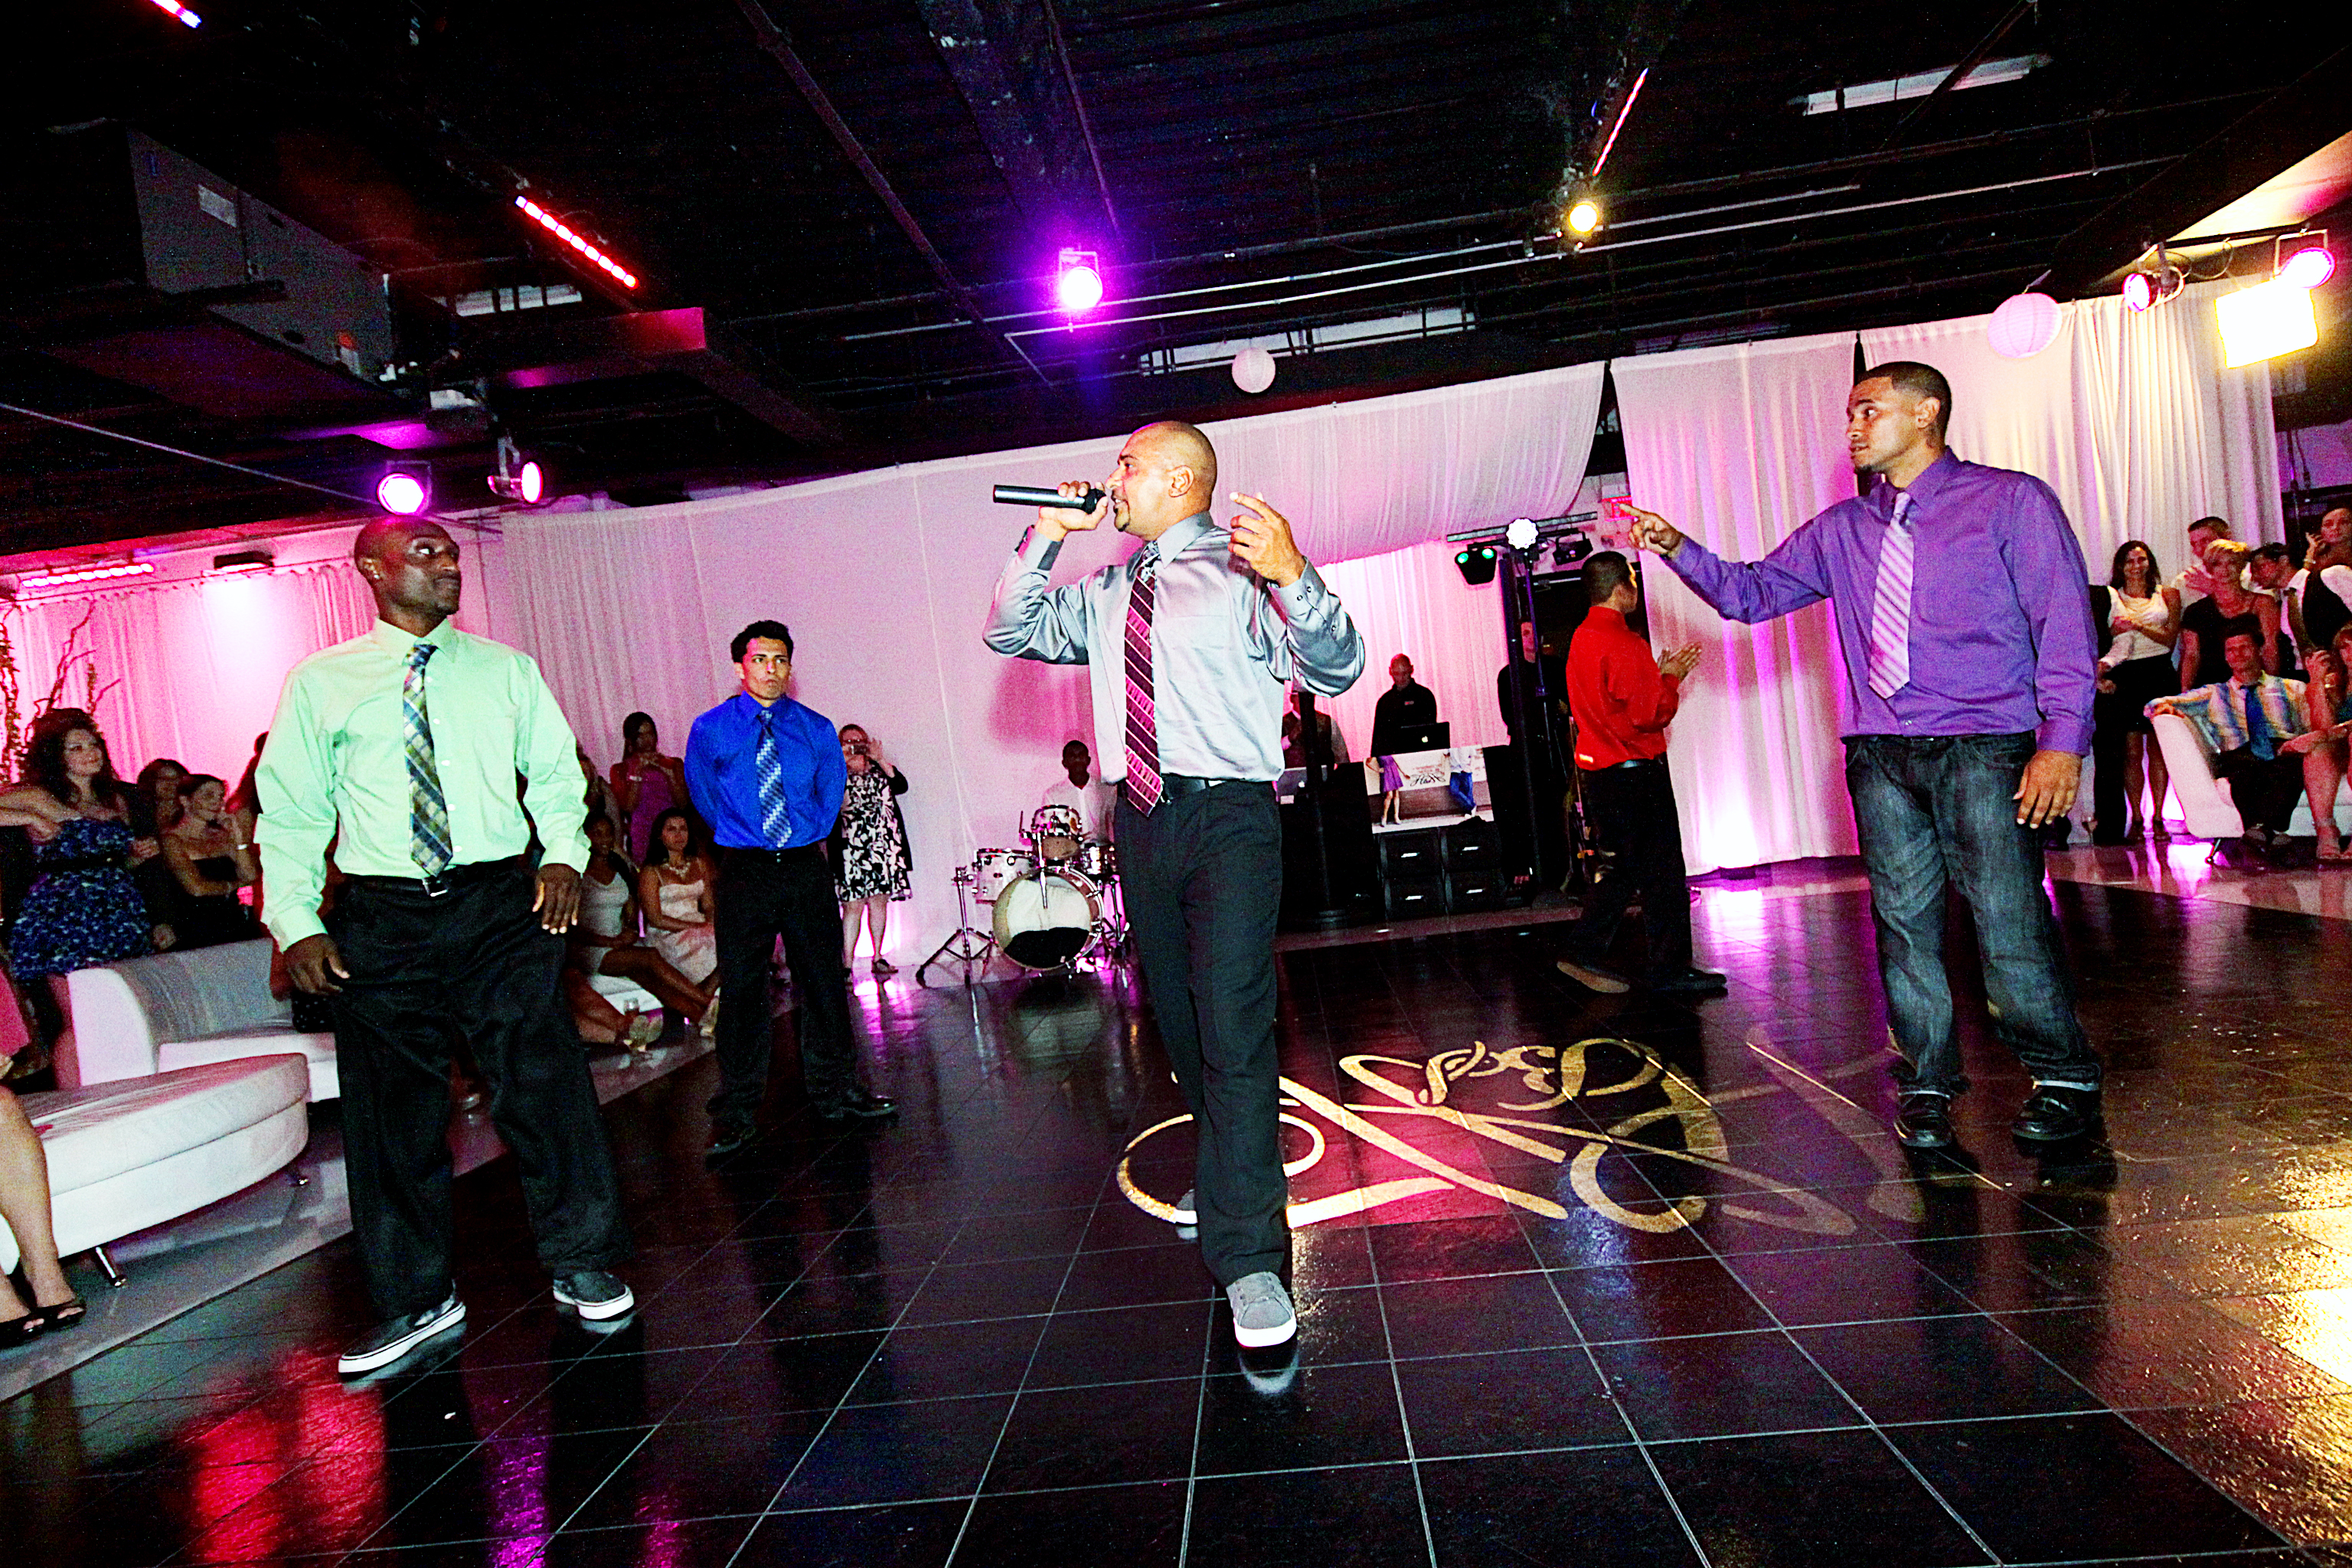 Wedding Recap: Reception Entertainment